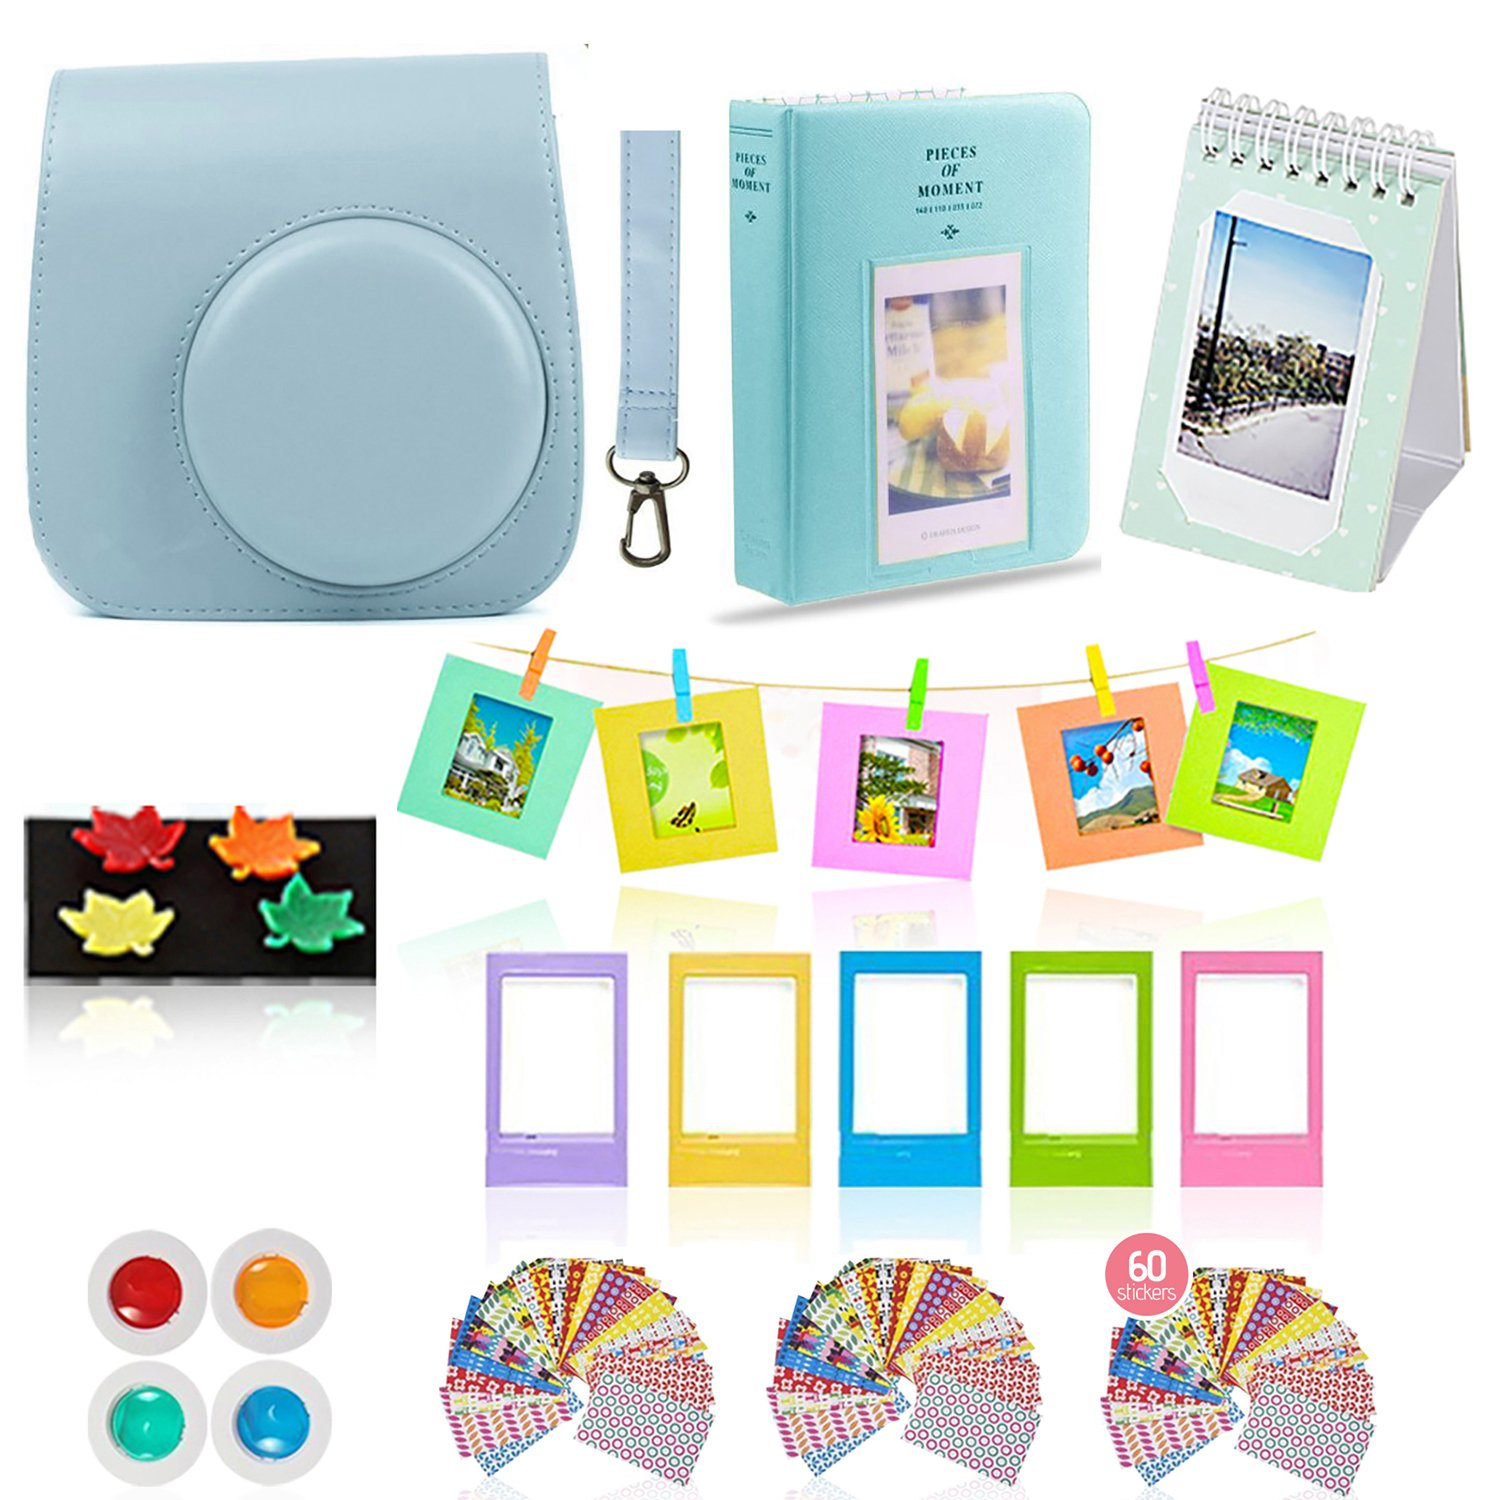 Fujifilm Instax Mini 26 Camera Accessories Bundle, 10 Piece Kit Includes: Mini 26 Case + Strap, 2 Photo Albums, 4 Color Lenses , Hanging + Photo Frames, Fridge Photo Magnets, 60 Stickers + Gift Set by Shutter